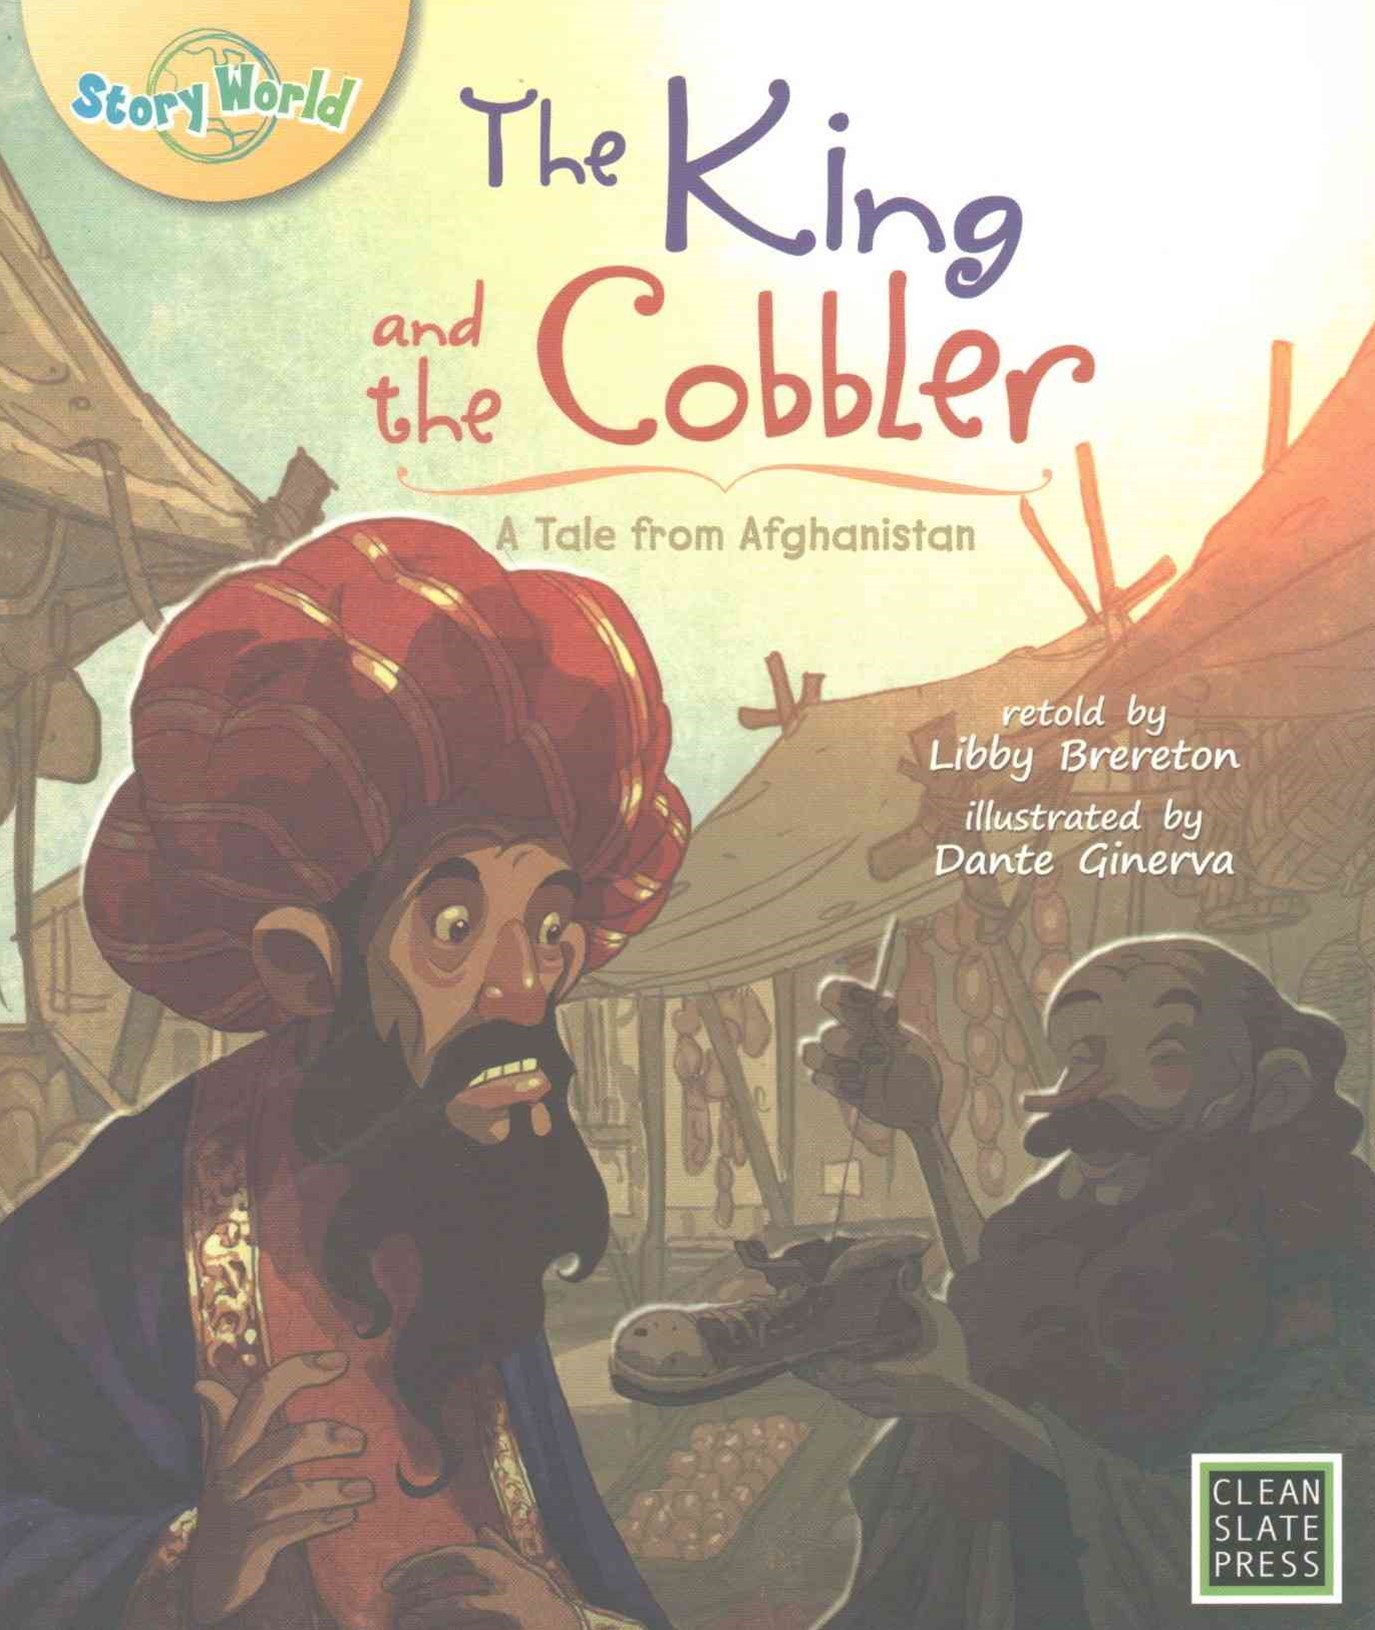 The King and the Cobbler